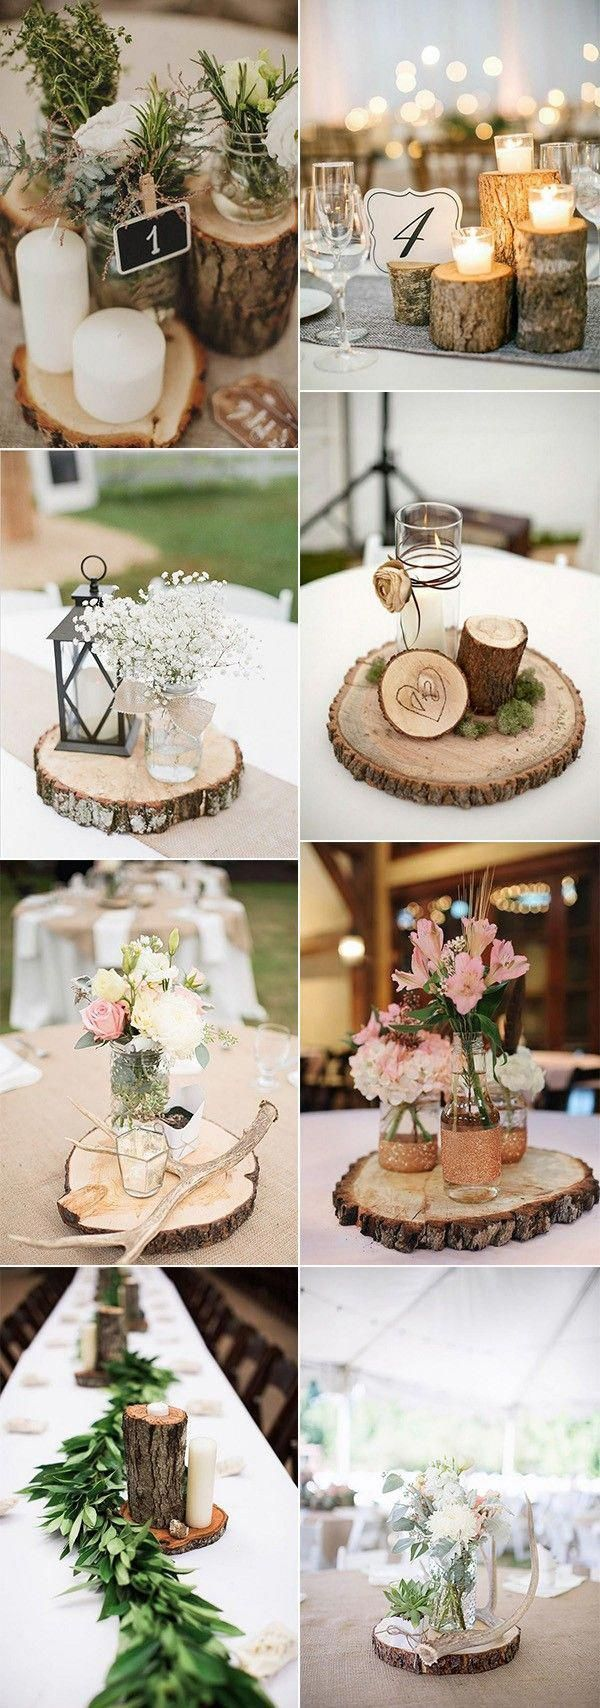 These rustic wedding ideas are really great #rusticweddingideas – #great